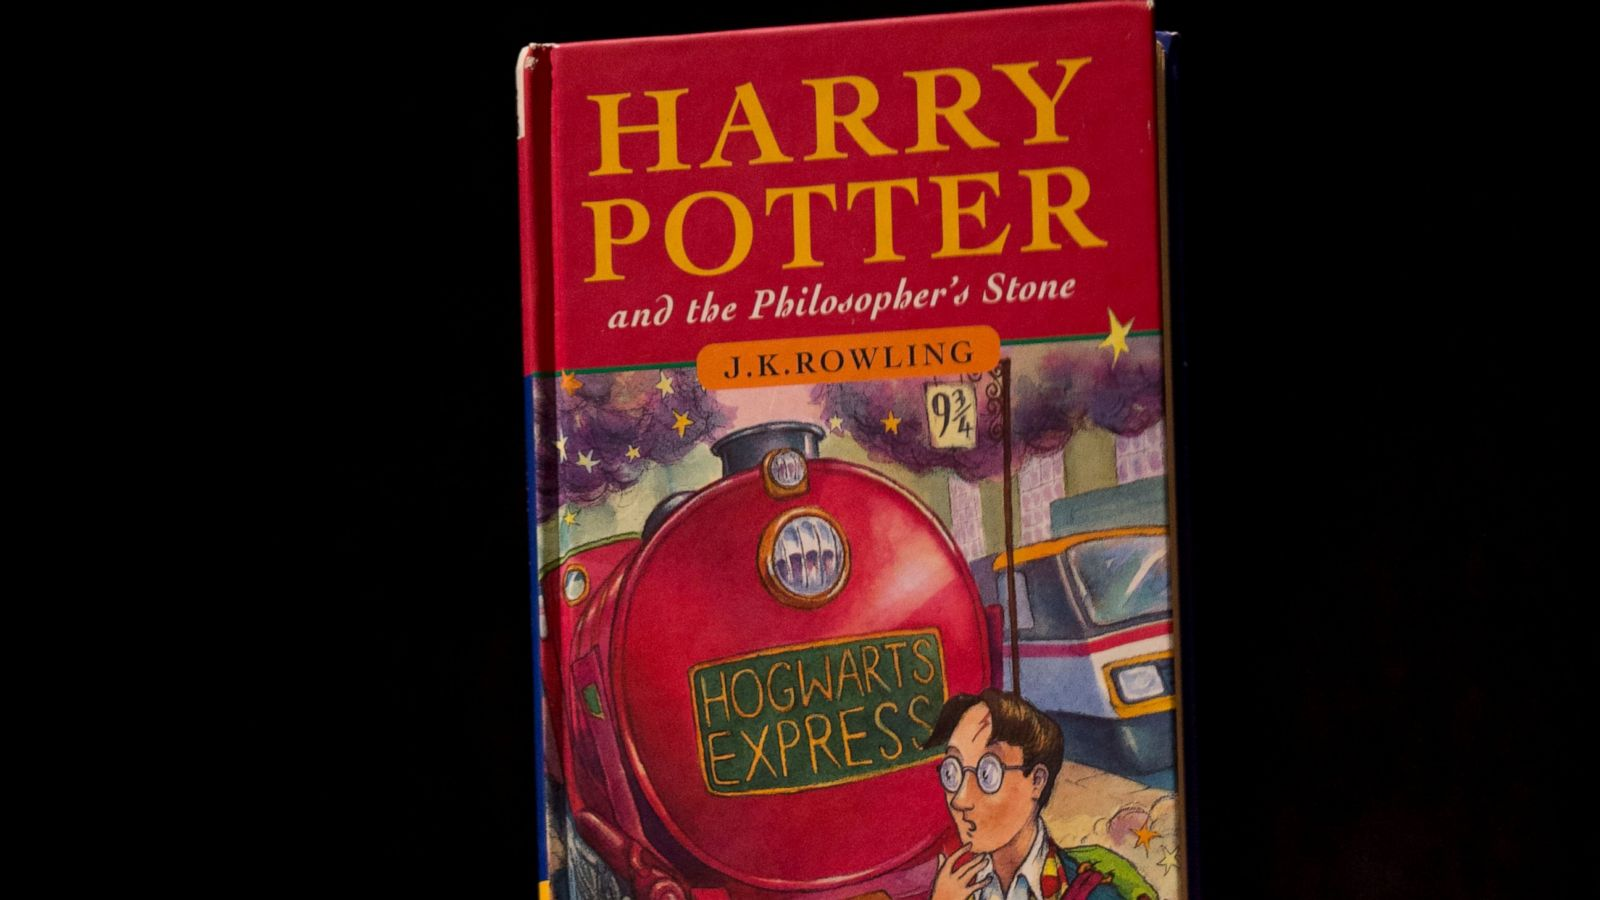 Evil spirits: Harry Potter books removed from Catholic school's library